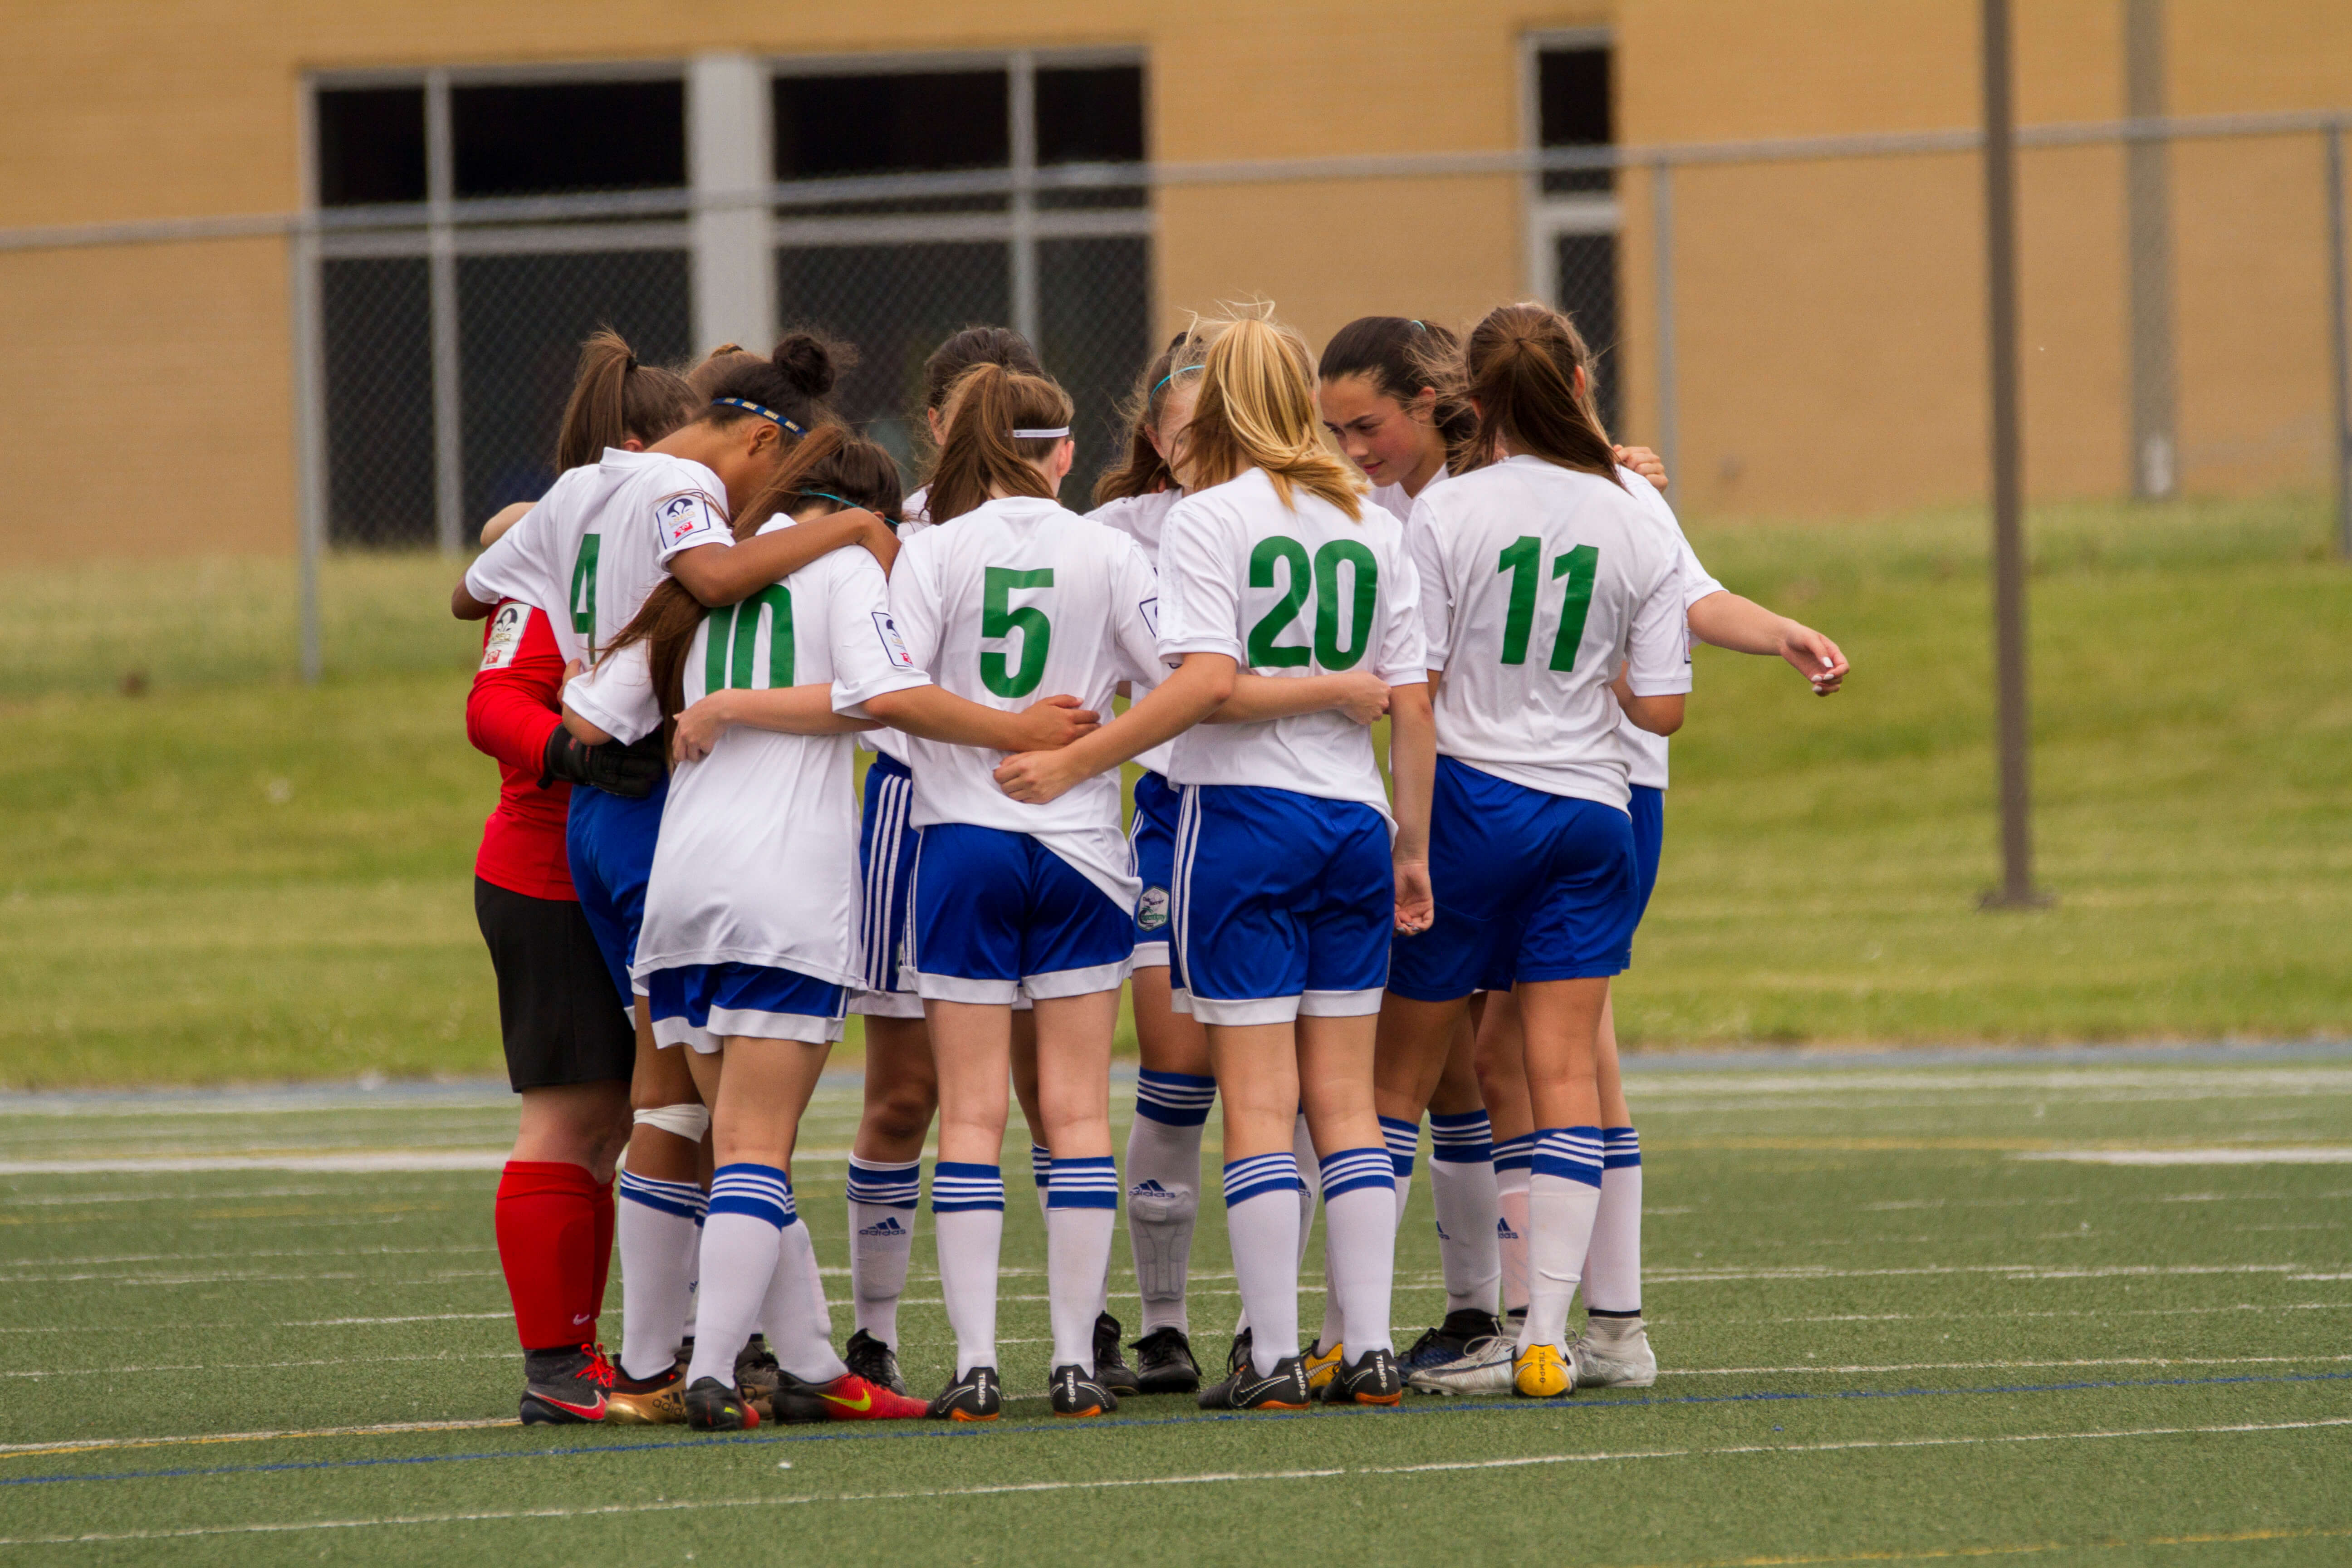 Olympiques soccer